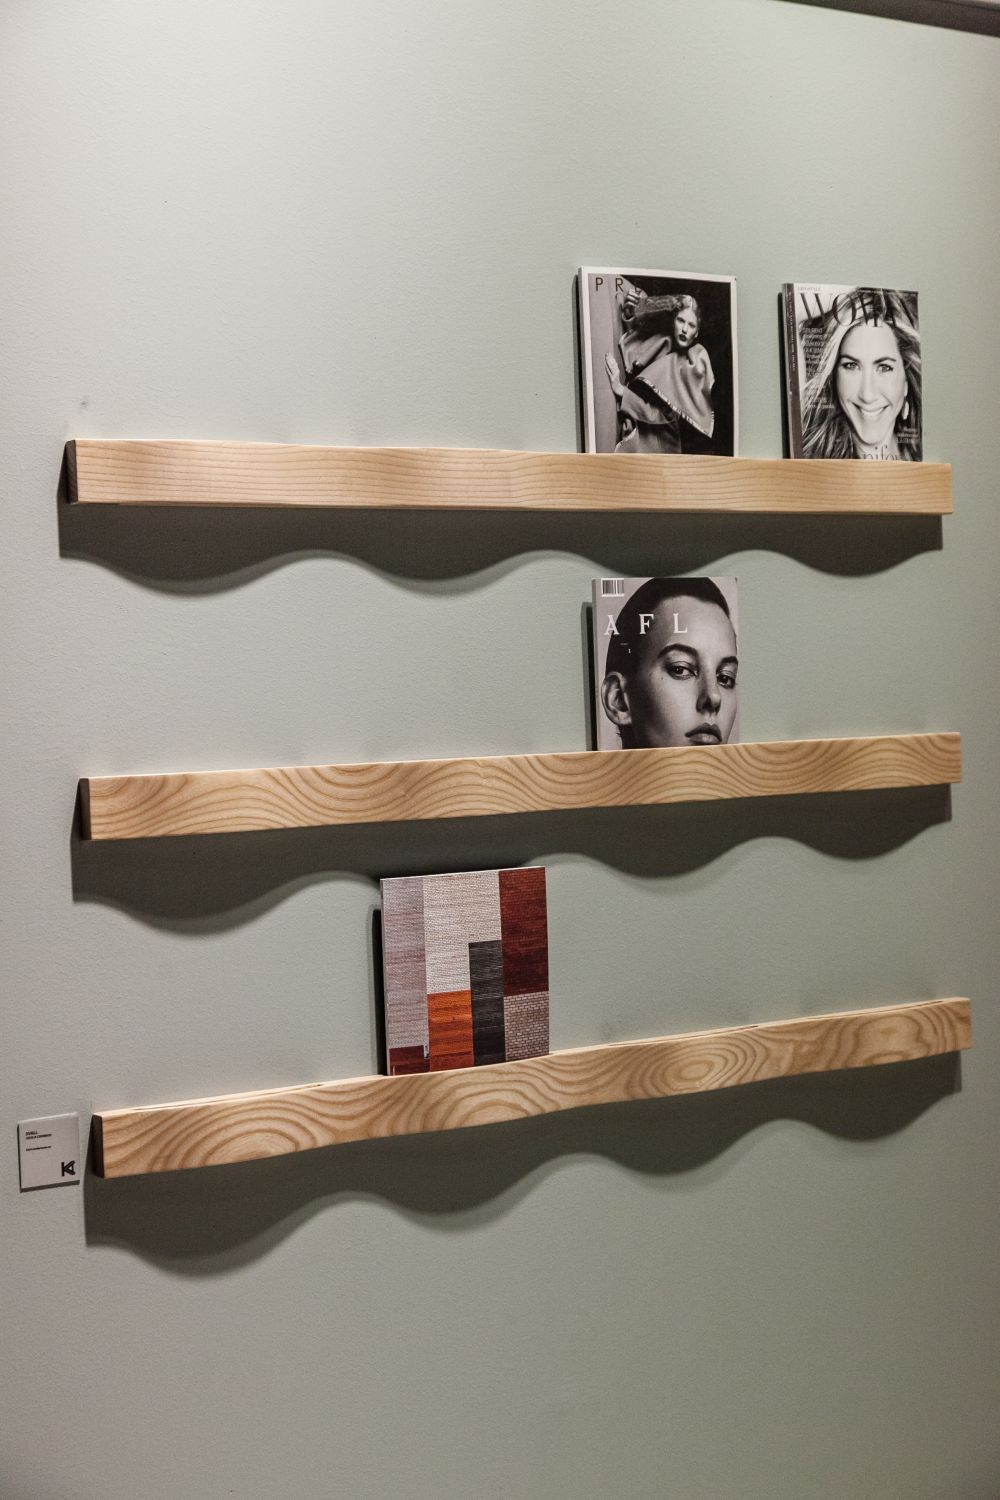 These shallow and minimalist wall shelves are designed to keep magazines. An interesting alternative to a rack